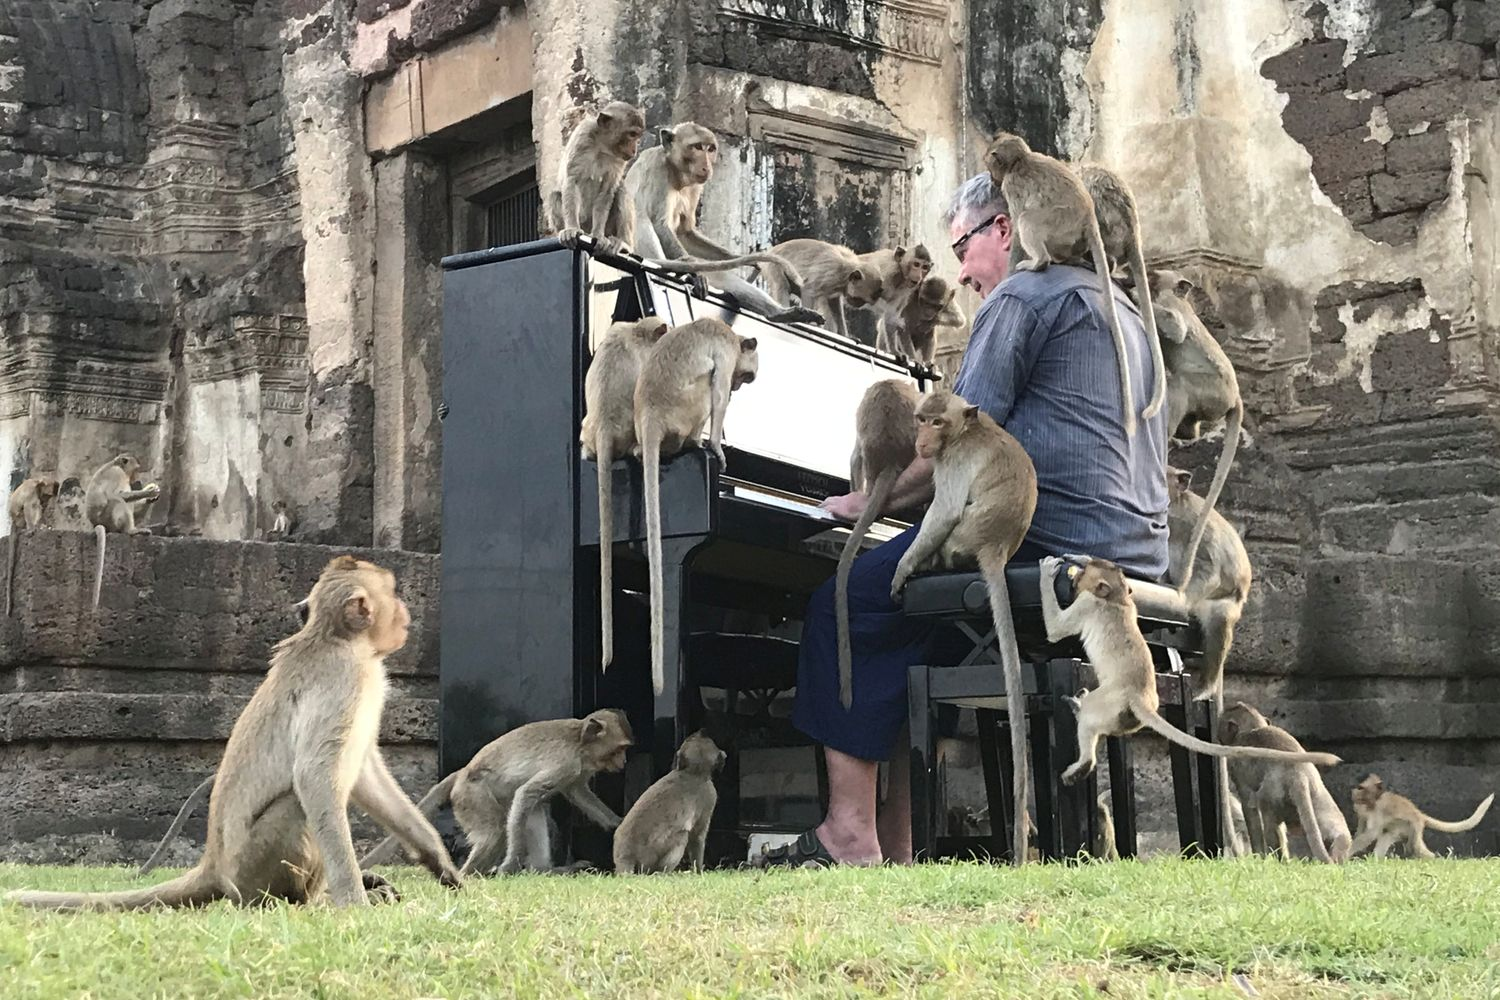 British musician Paul Barton plays the piano for monkeys that occupy abandoned historical areas in Lop Buri province on Saturday. (Reuters photo)